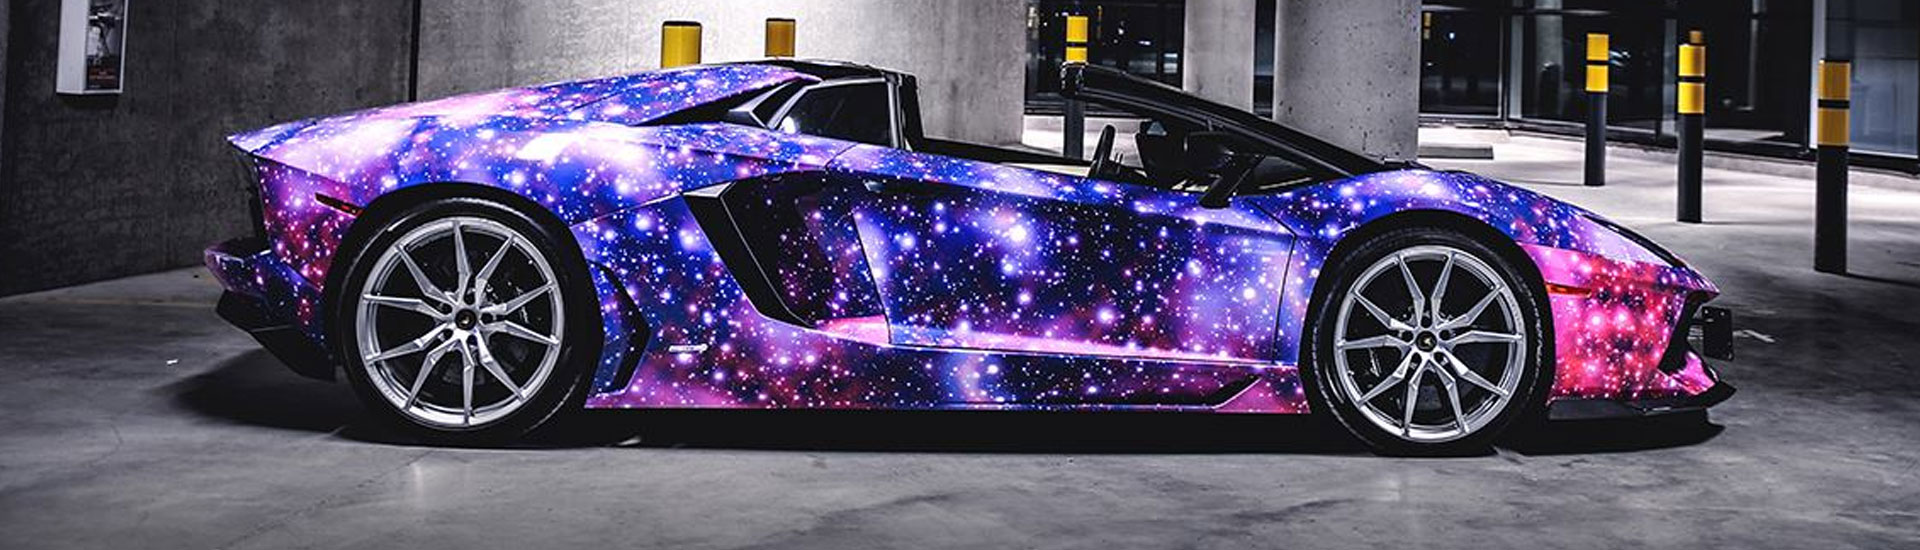 galaxy car wrap films